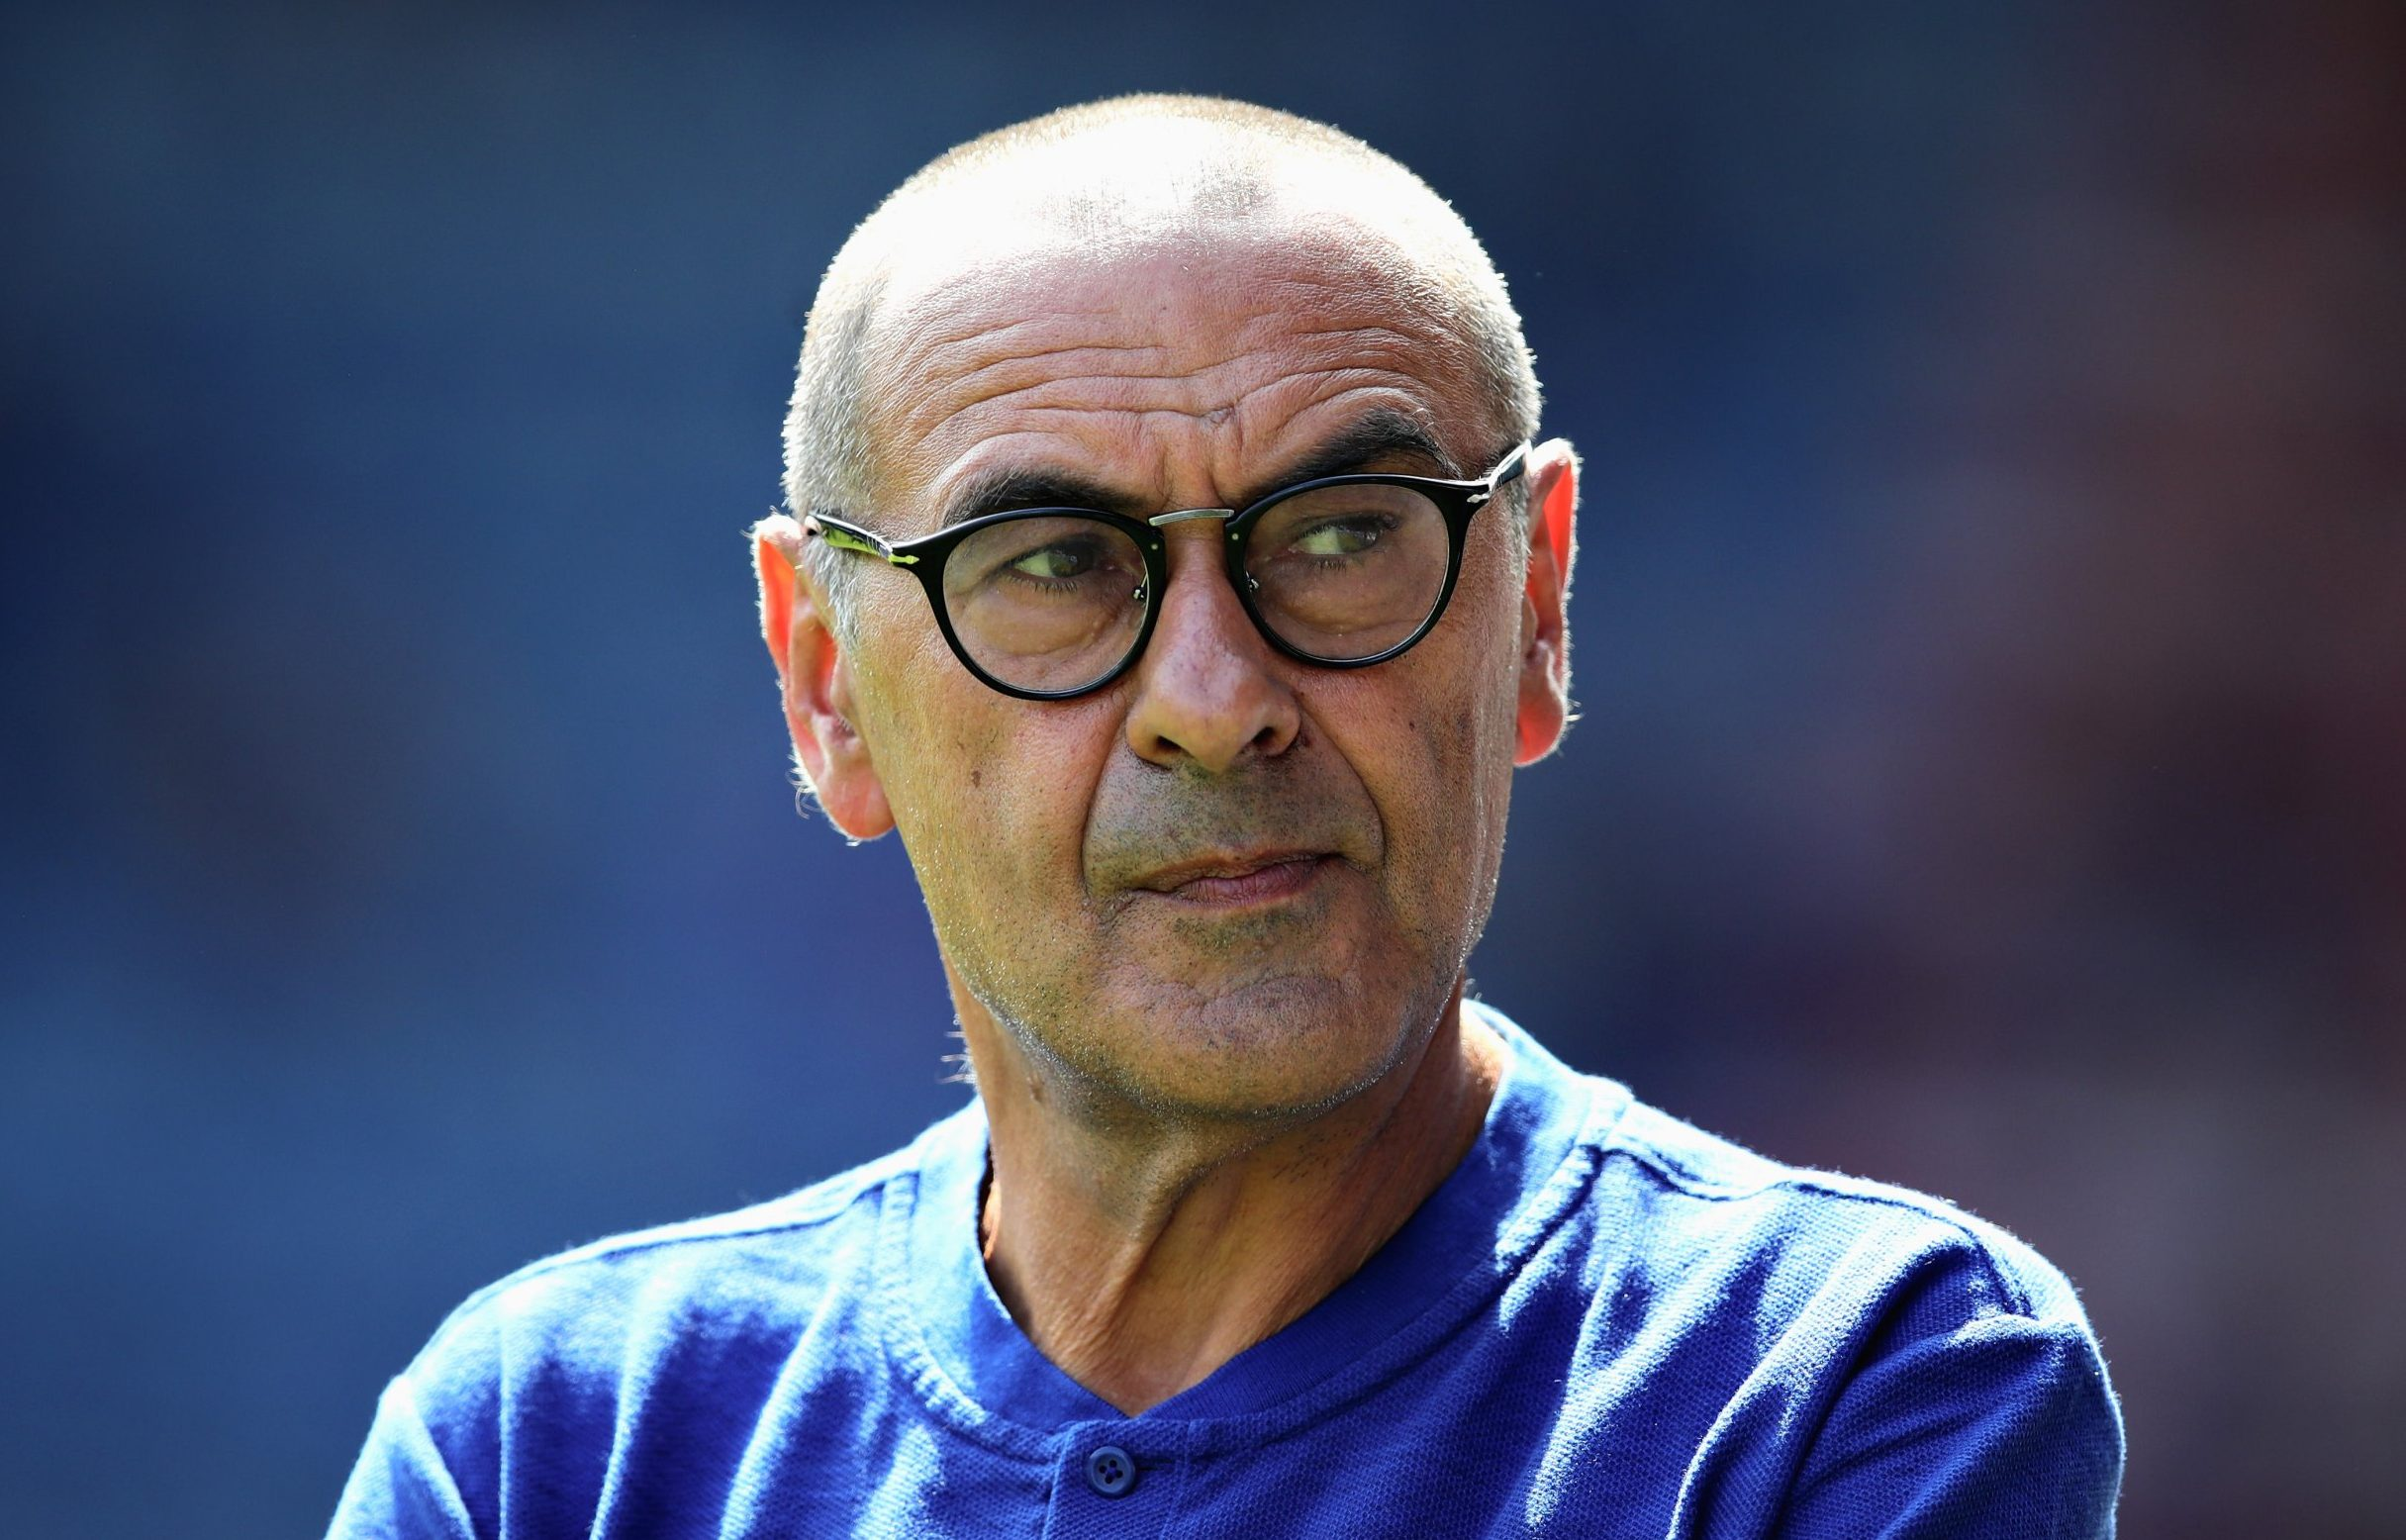 HUDDERSFIELD, ENGLAND - AUGUST 11: Chelsea manager Maurizio Sarri looks on during the Premier League match between Huddersfield Town and Chelsea FC at John Smith's Stadium on August 11, 2018 in Huddersfield, United Kingdom. (Photo by Chris Brunskill/Fantasista/Getty Images)